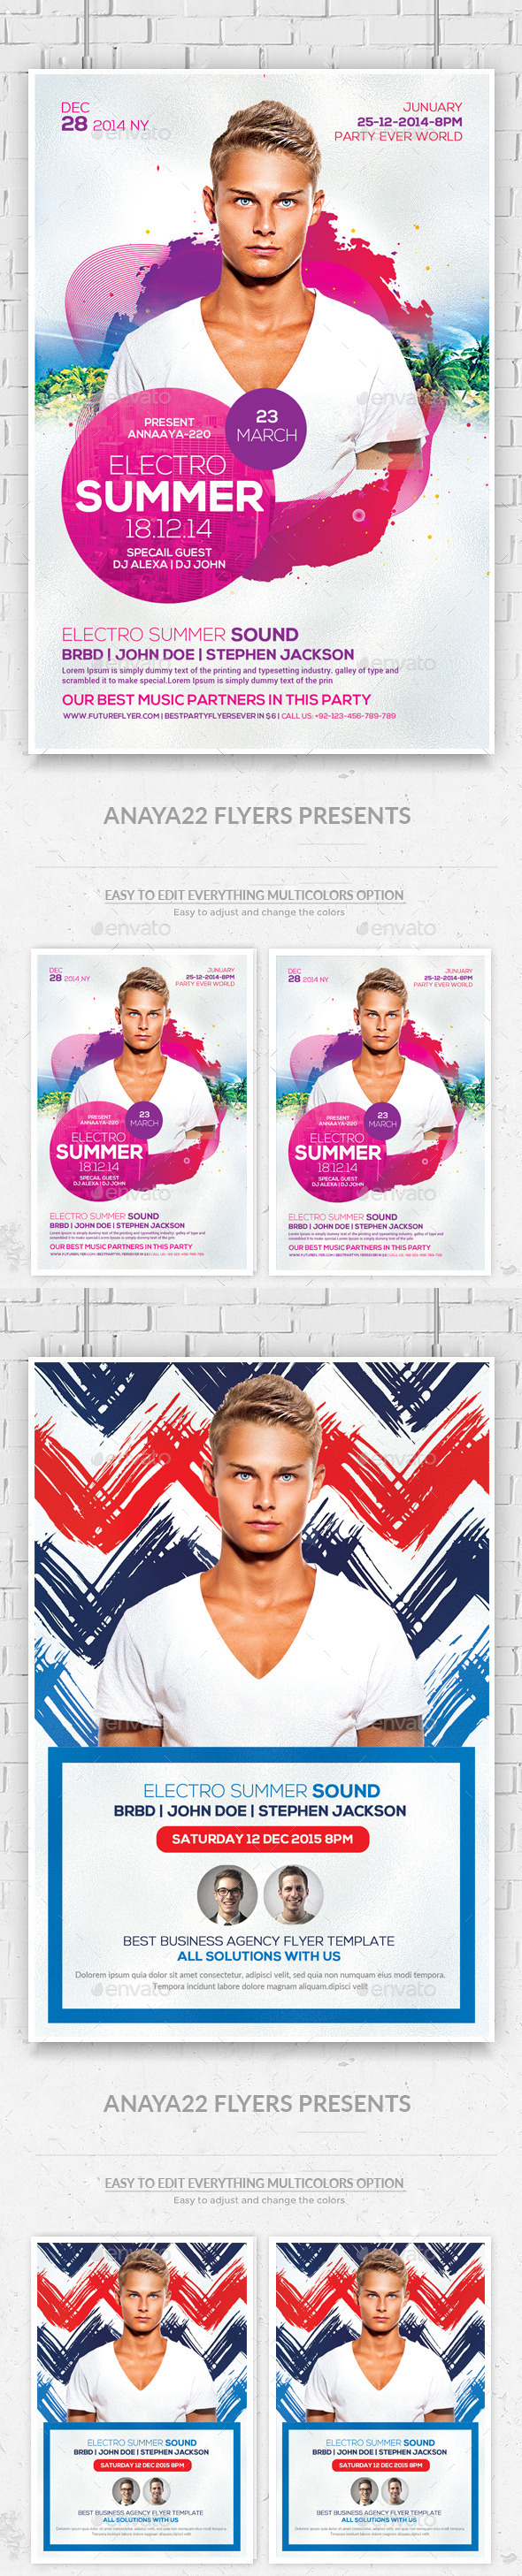 Summer Electro DJ Flyers Bundle - Clubs & Parties Events